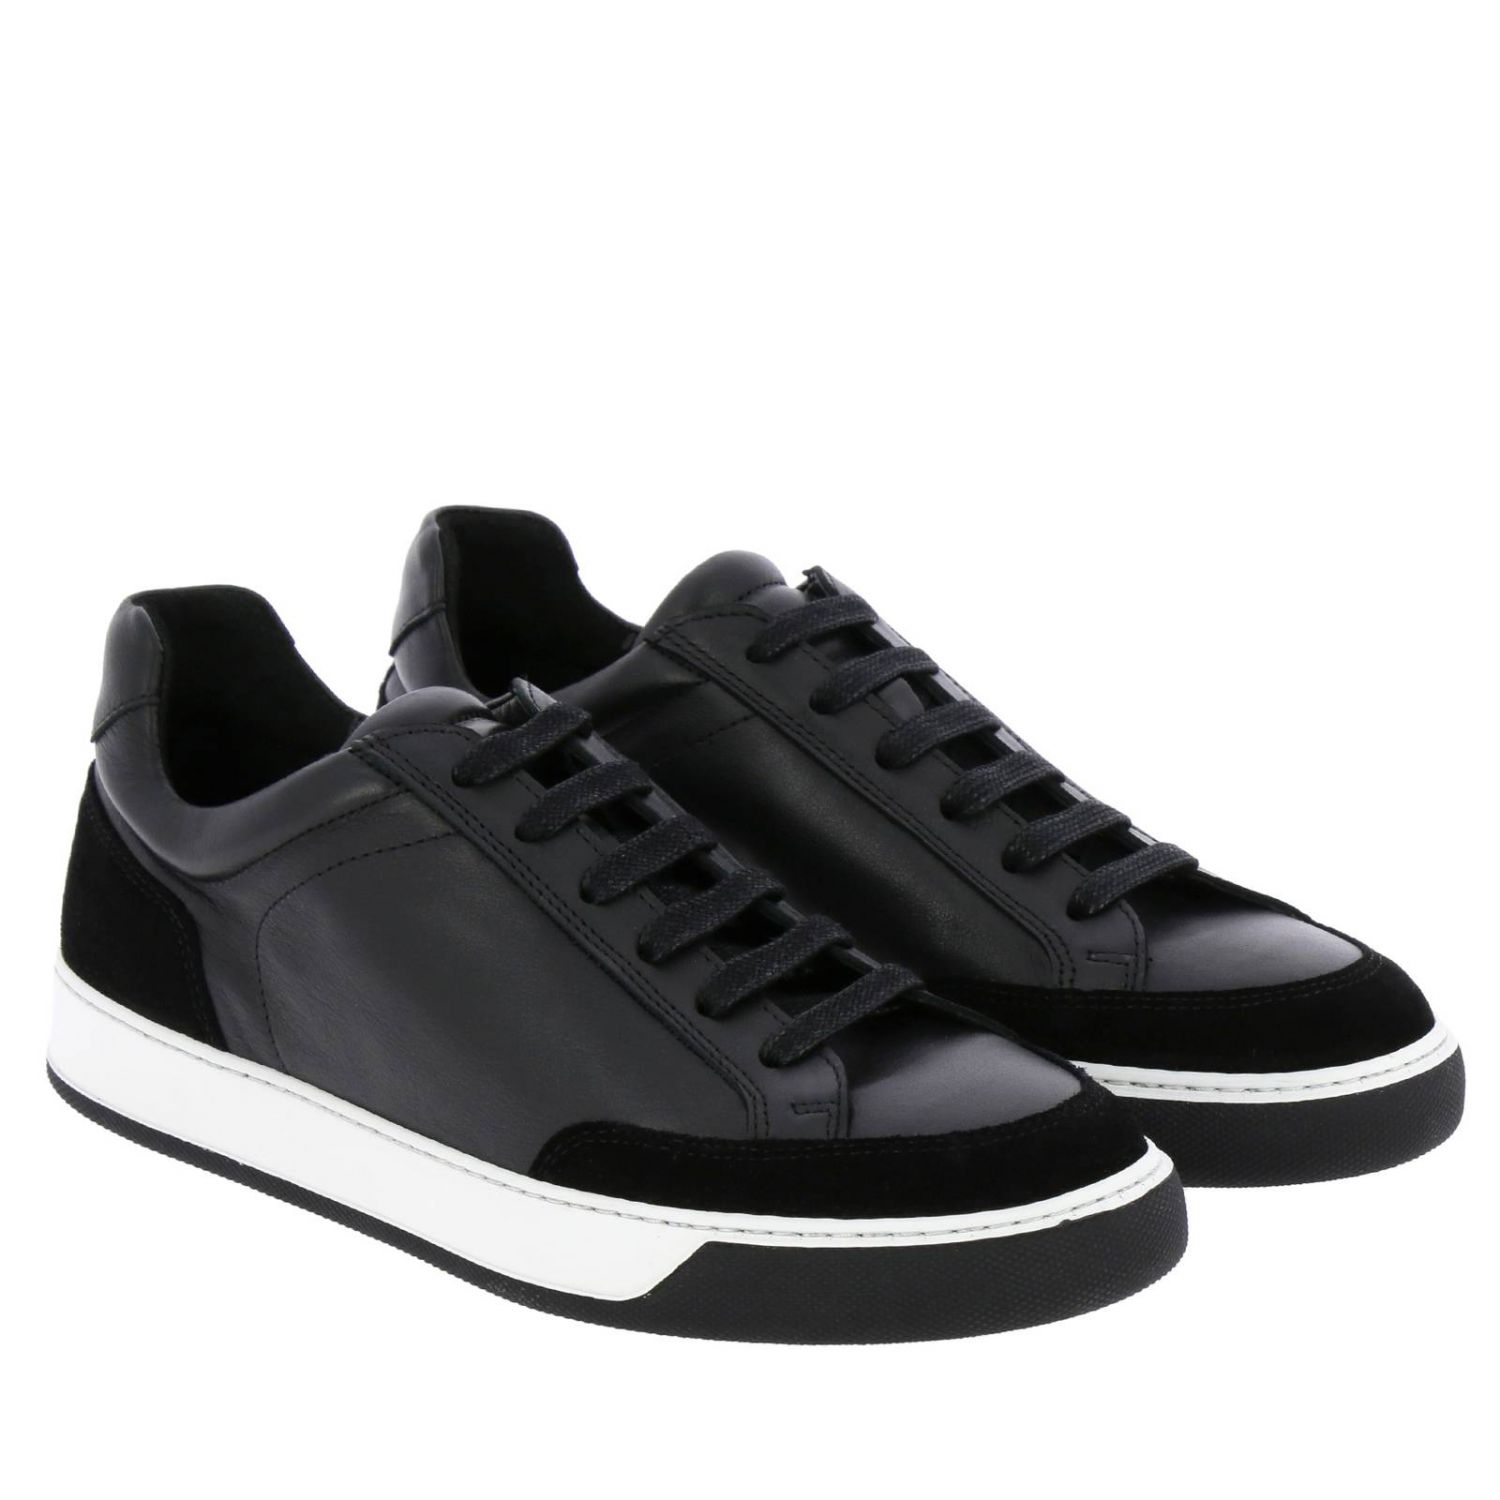 Trainers men National Standard black 2